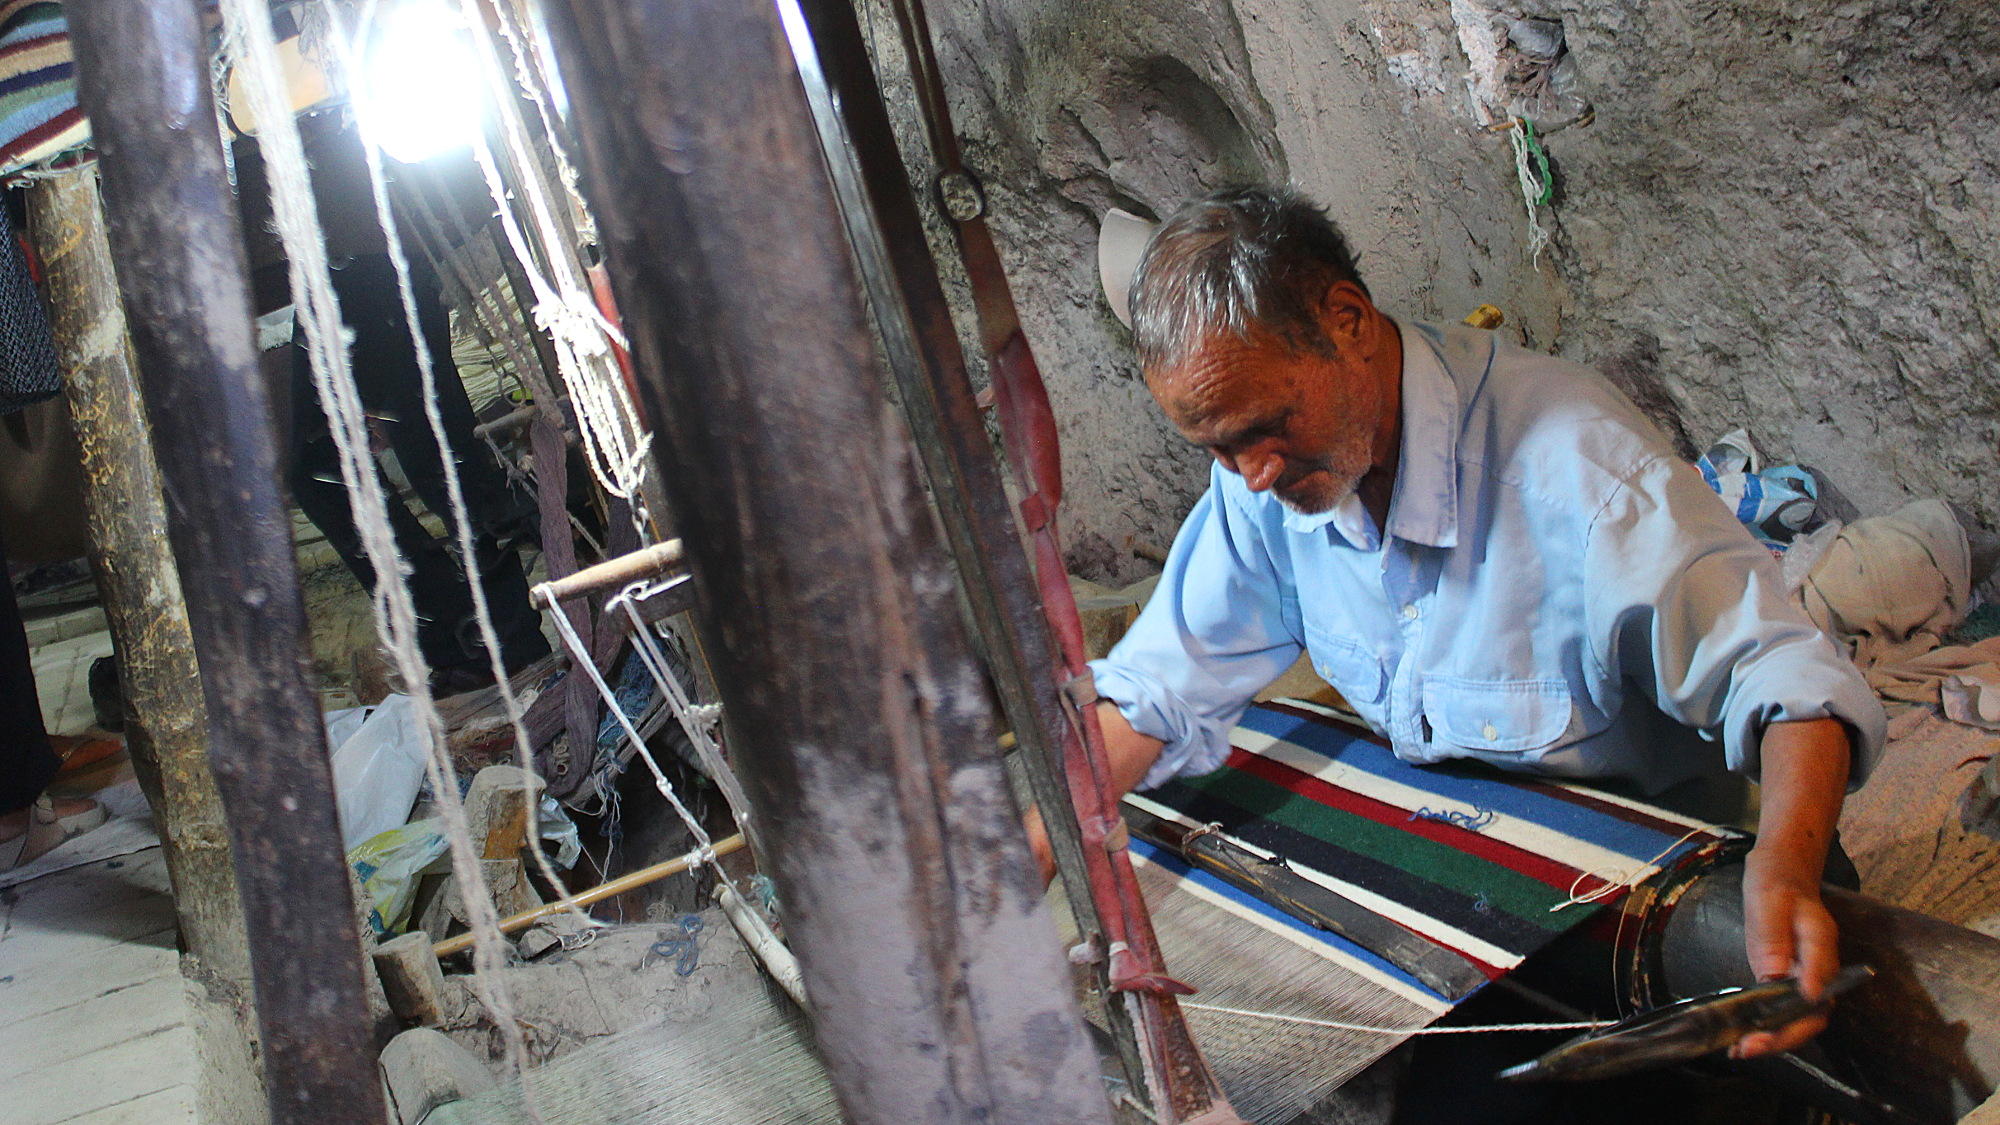 Traditional carpet maker in a cave in Iran.